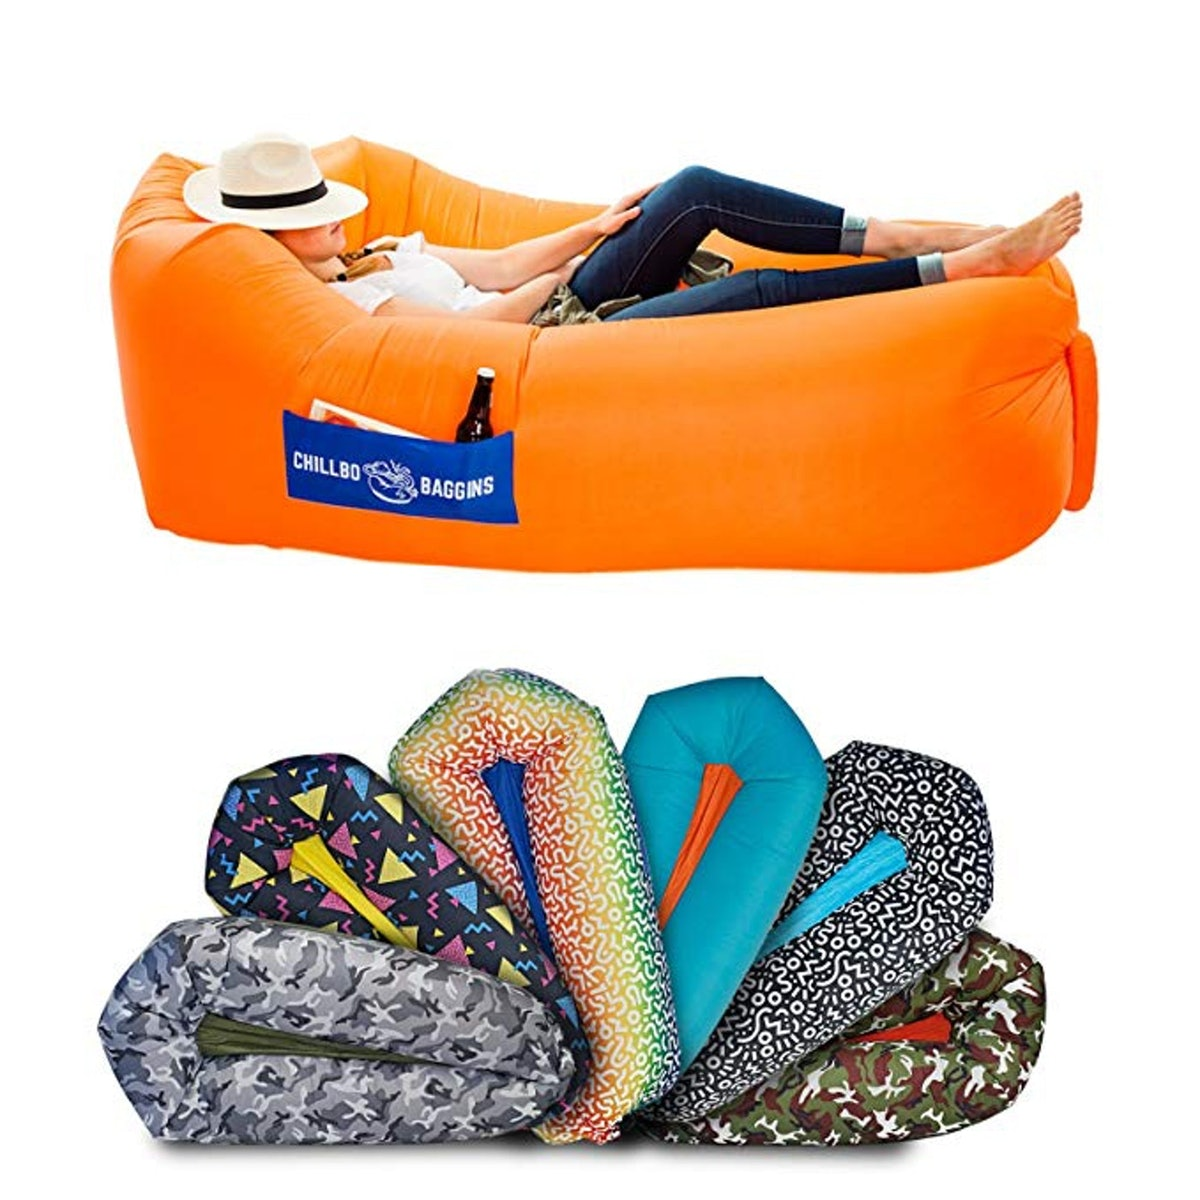 Chillbo SHWAGGINS 2.0 Best Inflatable Lounger